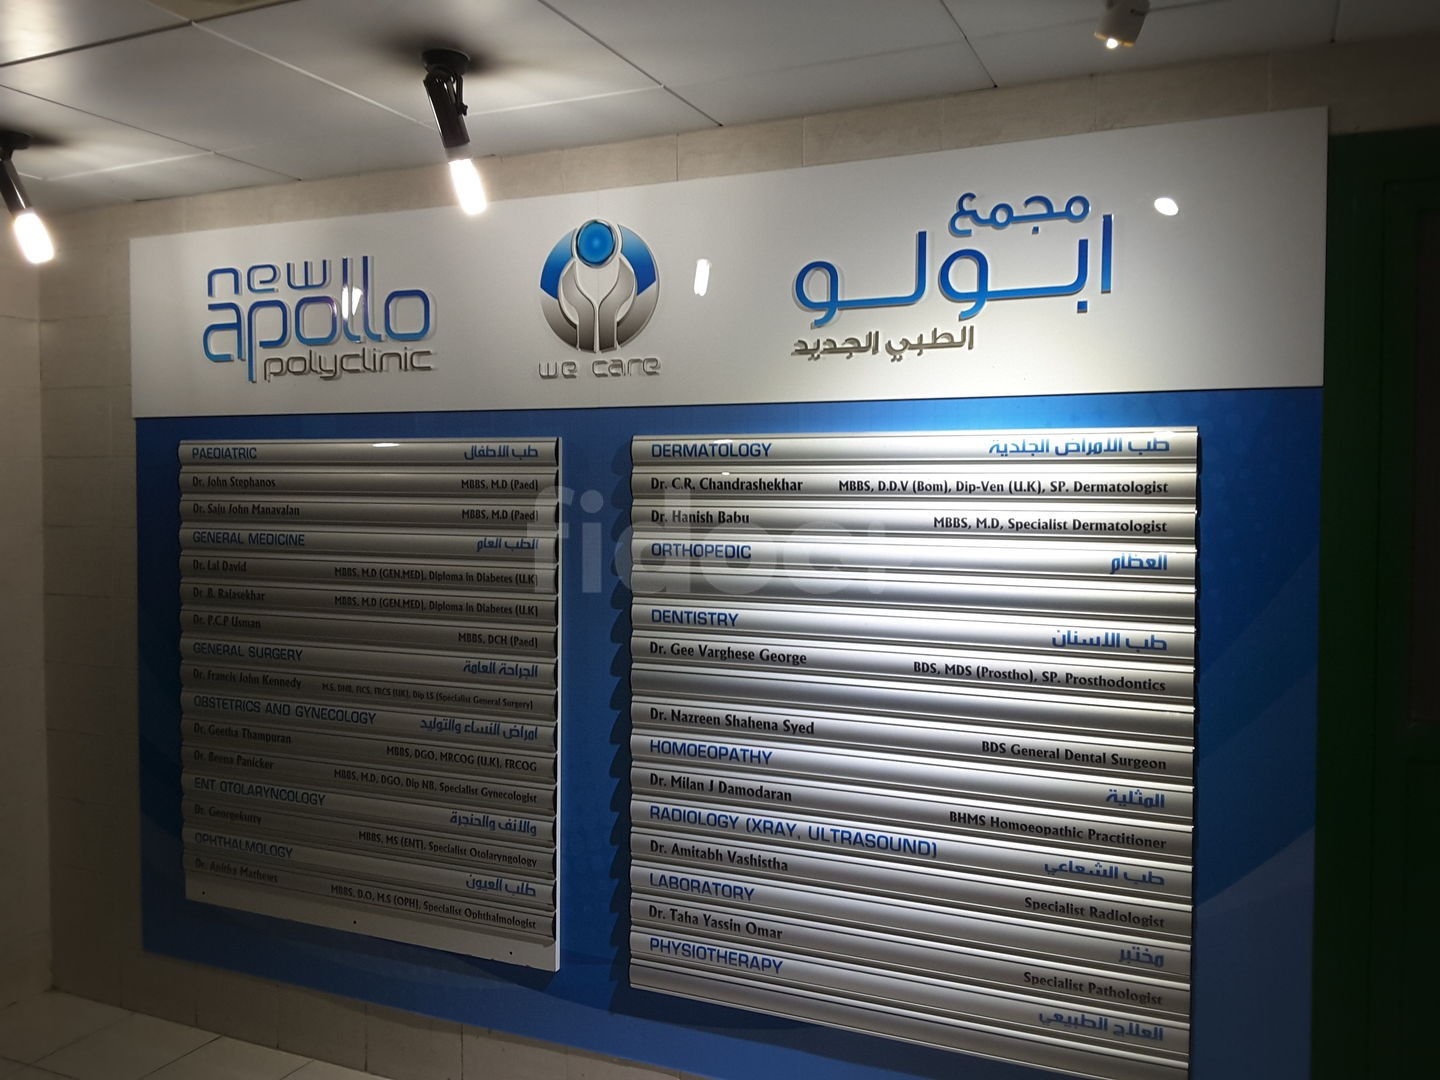 New Apollo Polyclinic, Dubai